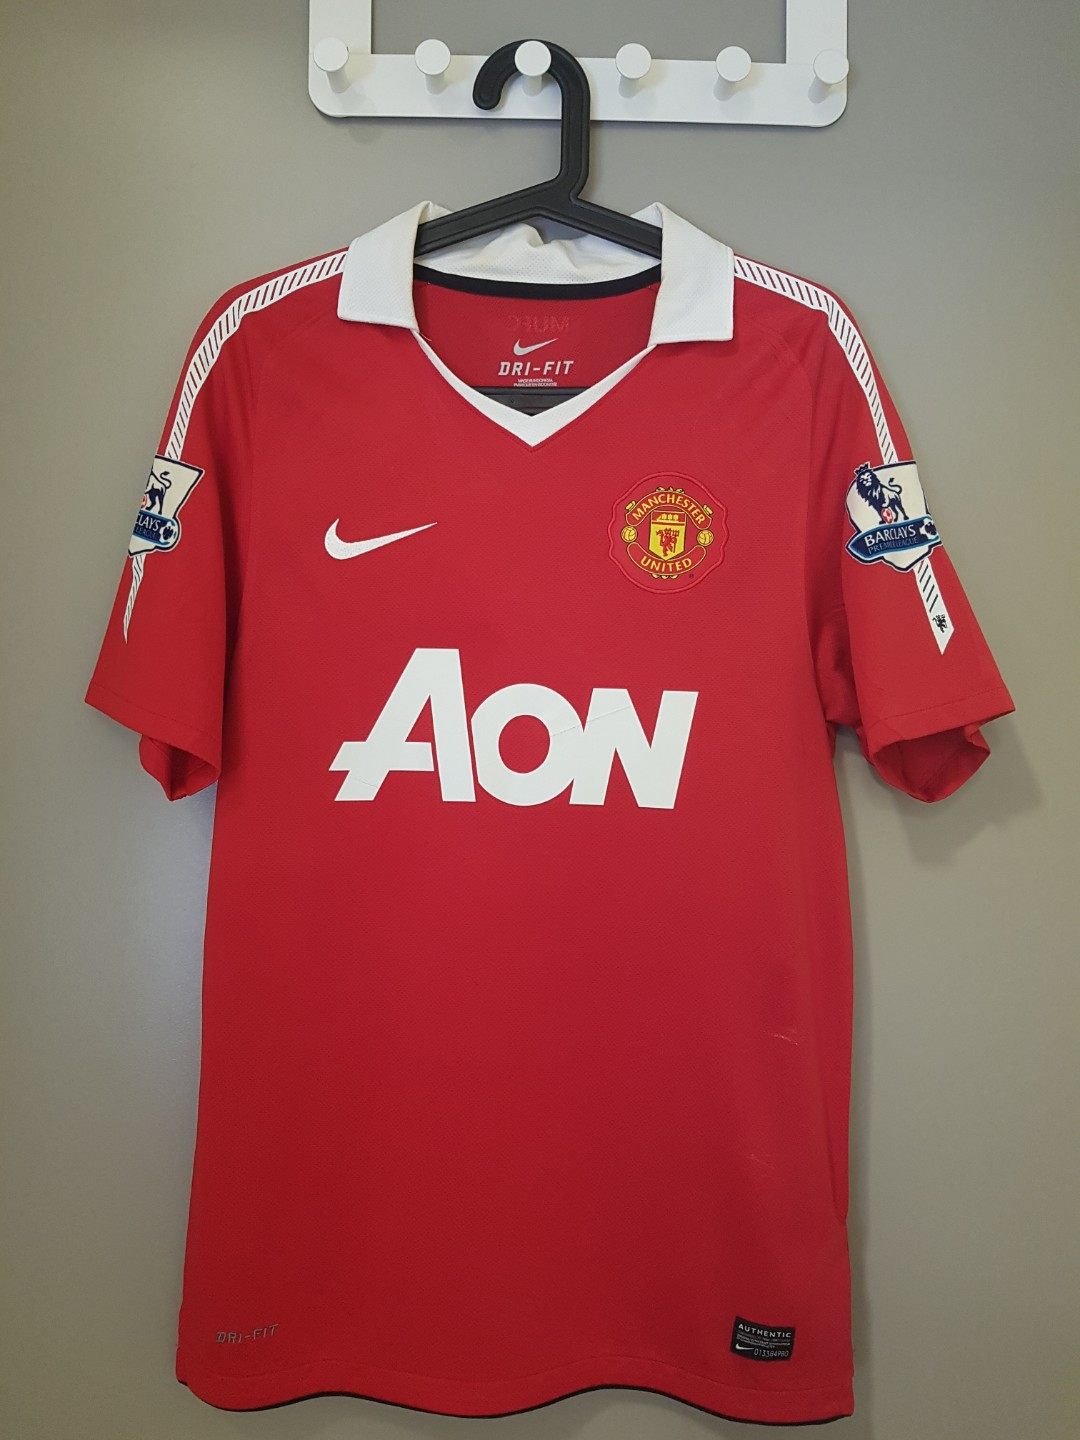 9f93eec25 Manchester United Home Jersey 2010-2011 - Size S